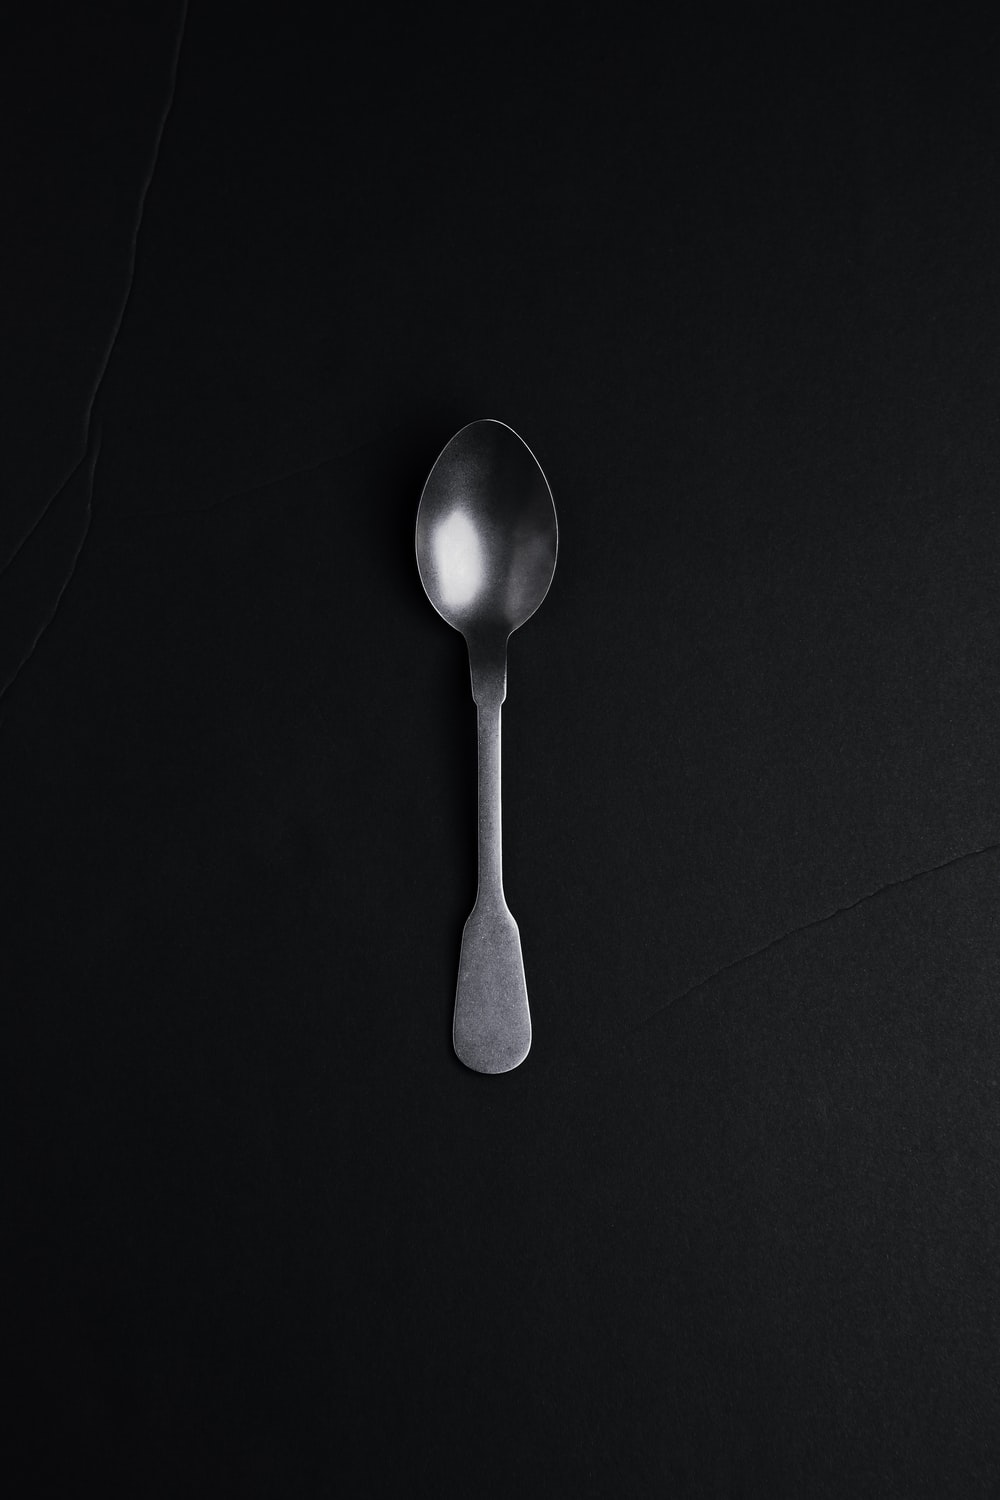 silver spoon on black textile